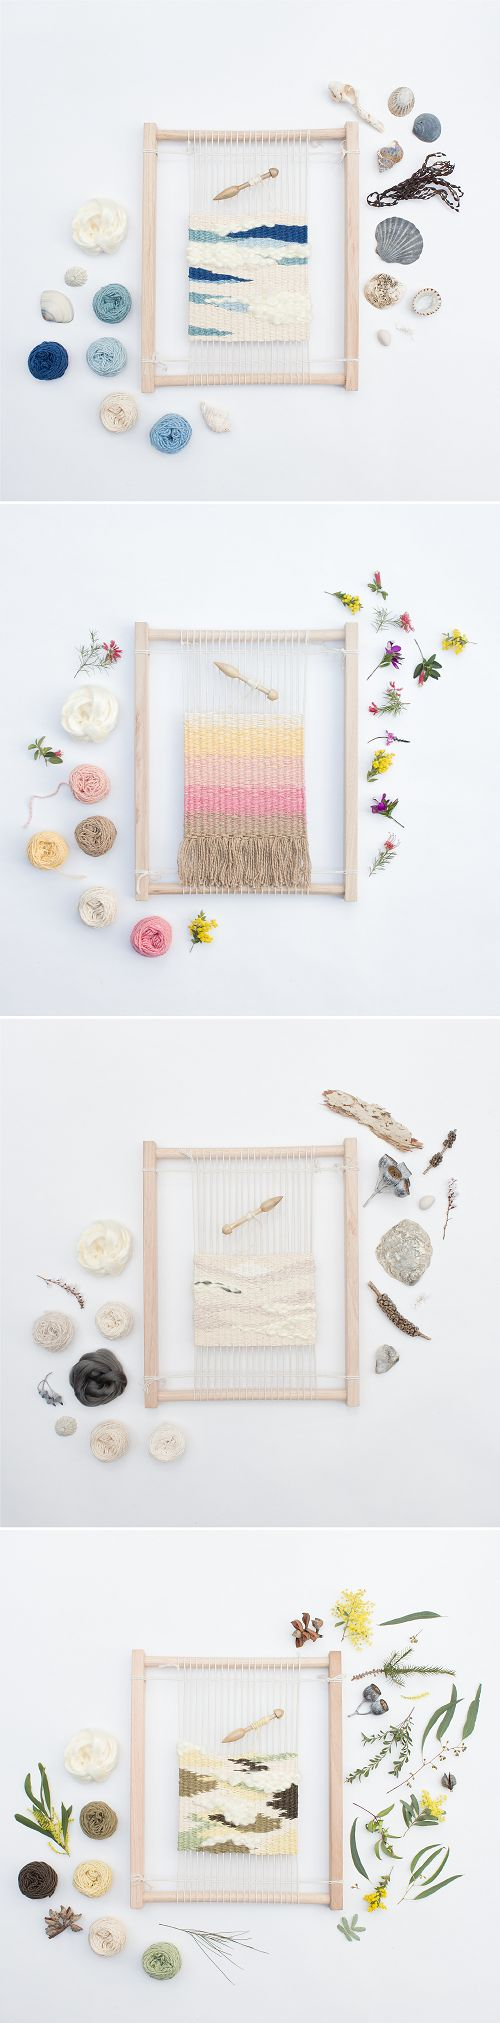 Eco Weaving Kit for beginners by Alchemy.